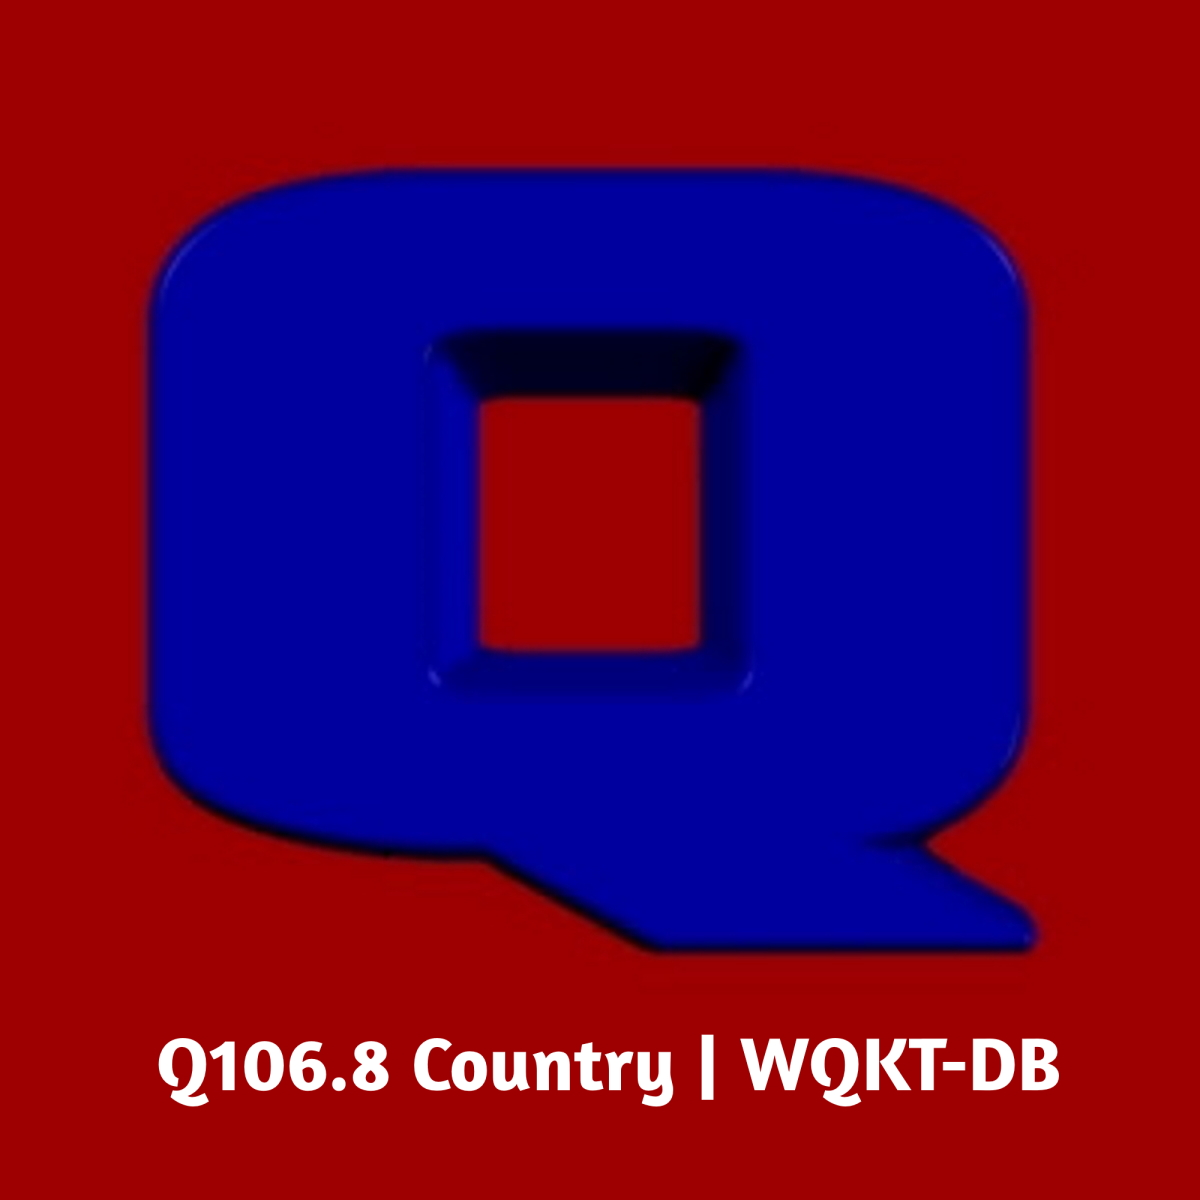 Art for TOH by Q106.8 Country | WQKT-DB